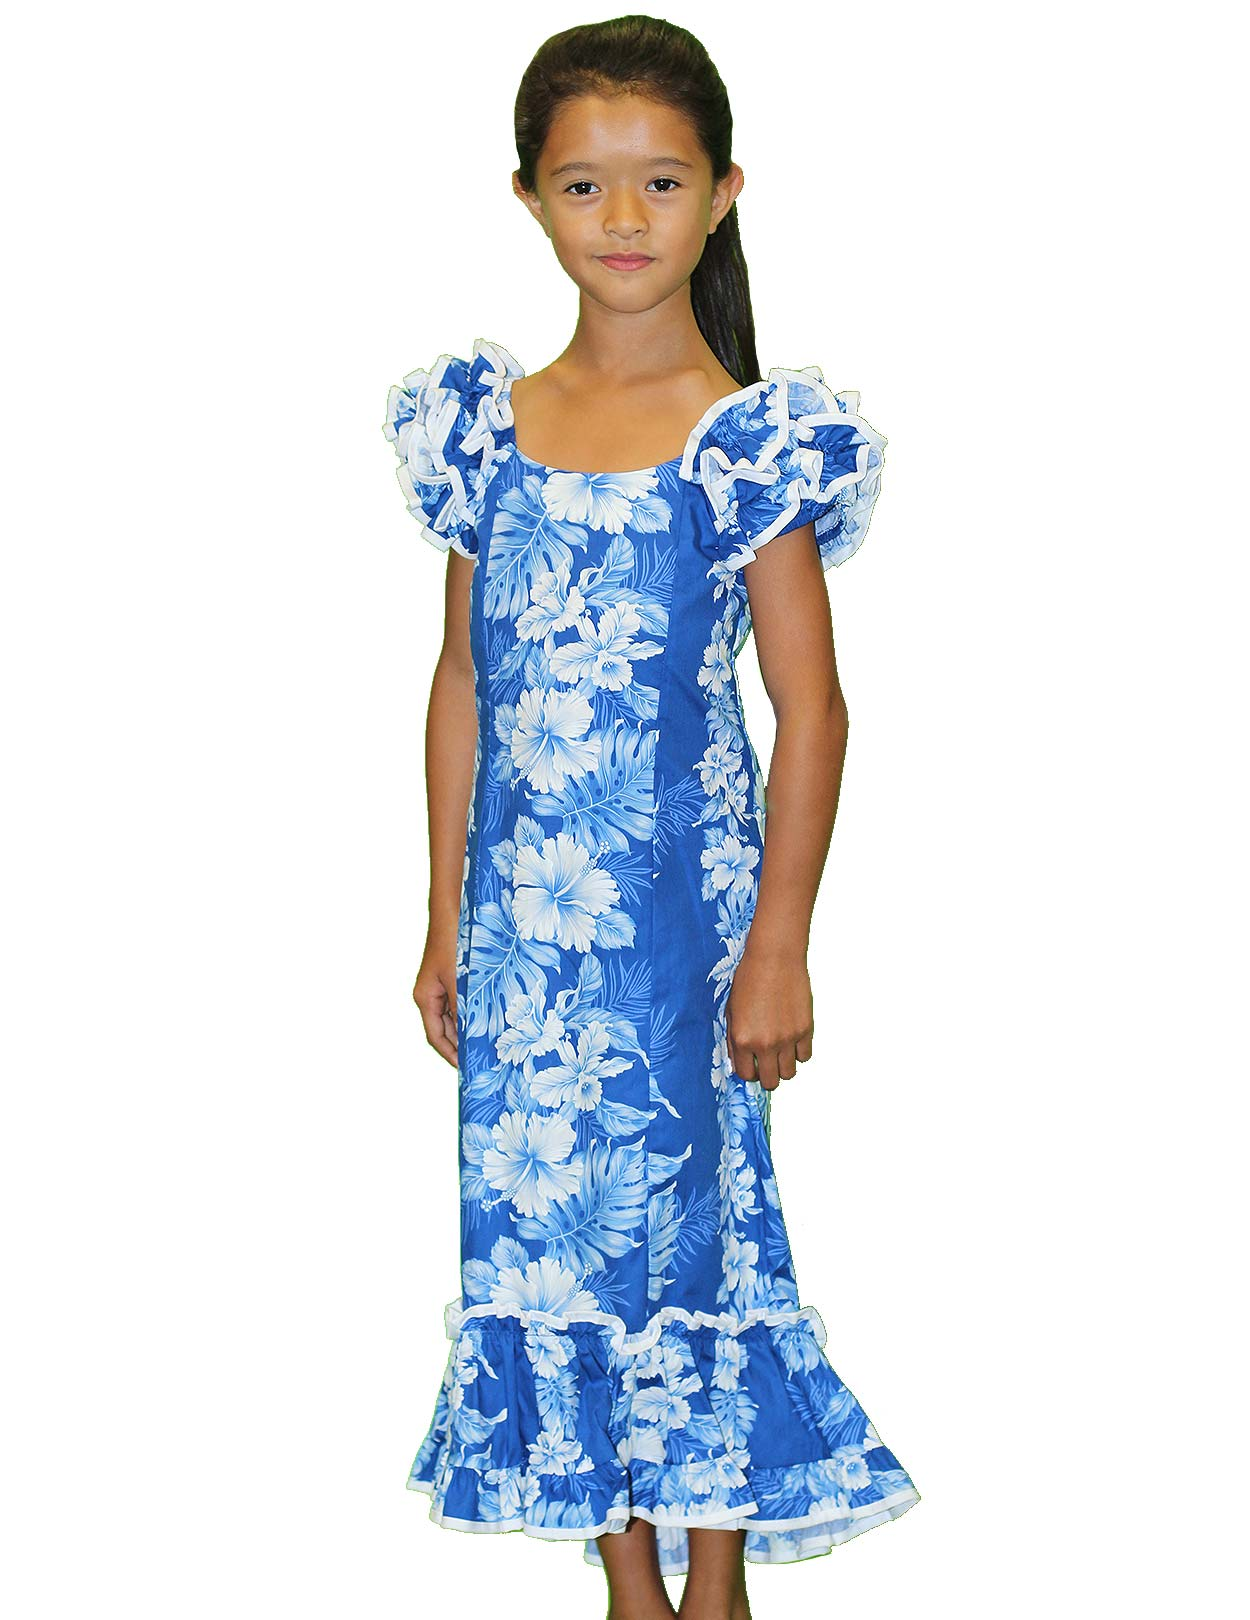 Girls ruffled royal blue muumuu dress haku laape shaka time girls ruffled royal blue muumuu dress haku laape shaka time hawaii clothing store ombrellifo Image collections